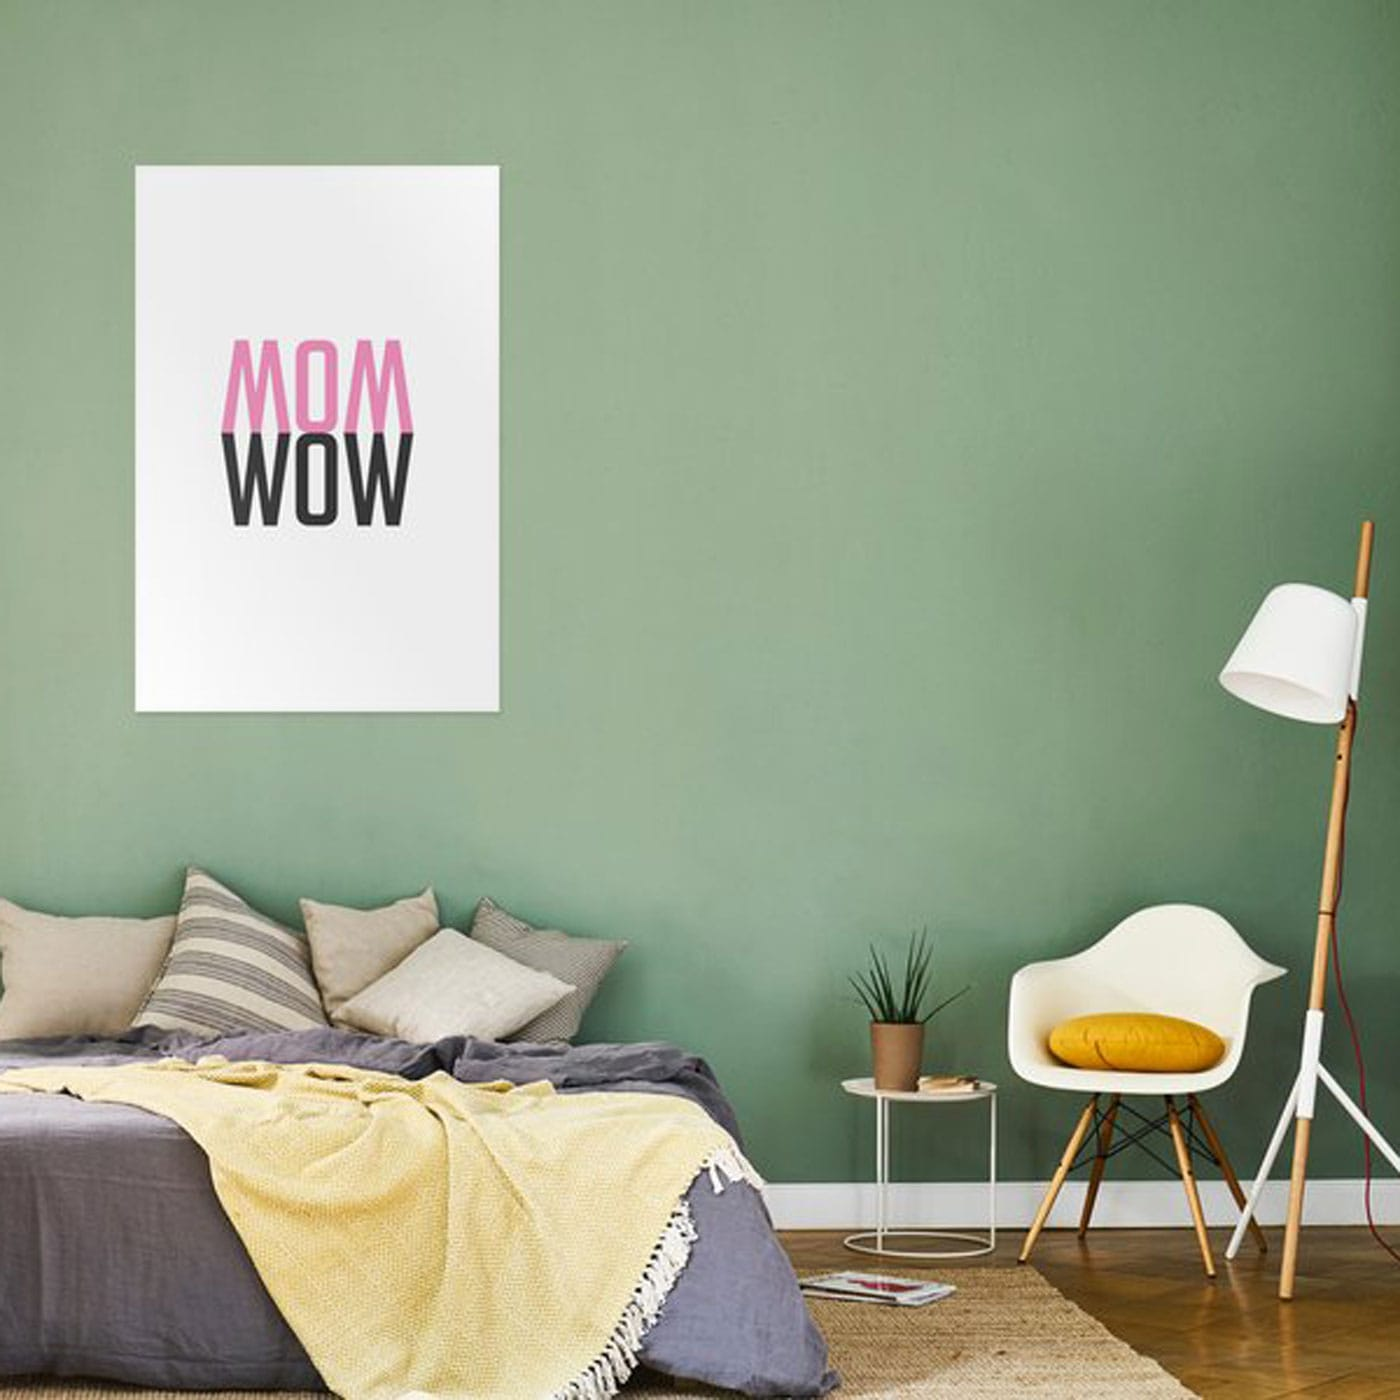 WOW MOM-Poster – tolles Geschenk für tolle Mamas // HIMBEER